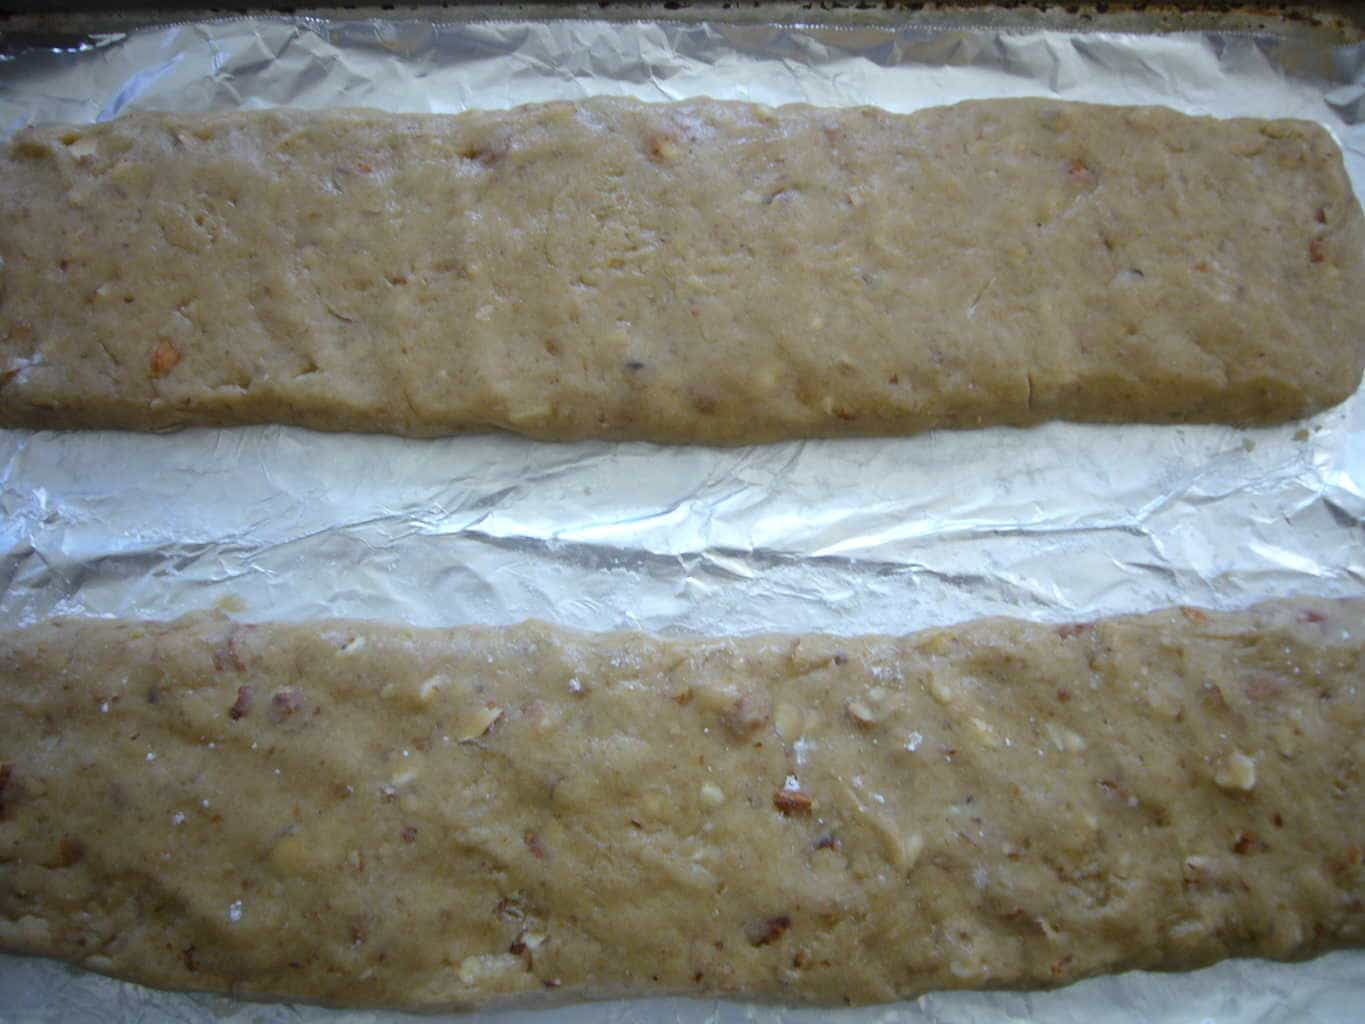 Anise Almond Honey Biscotti dough shaped into logs